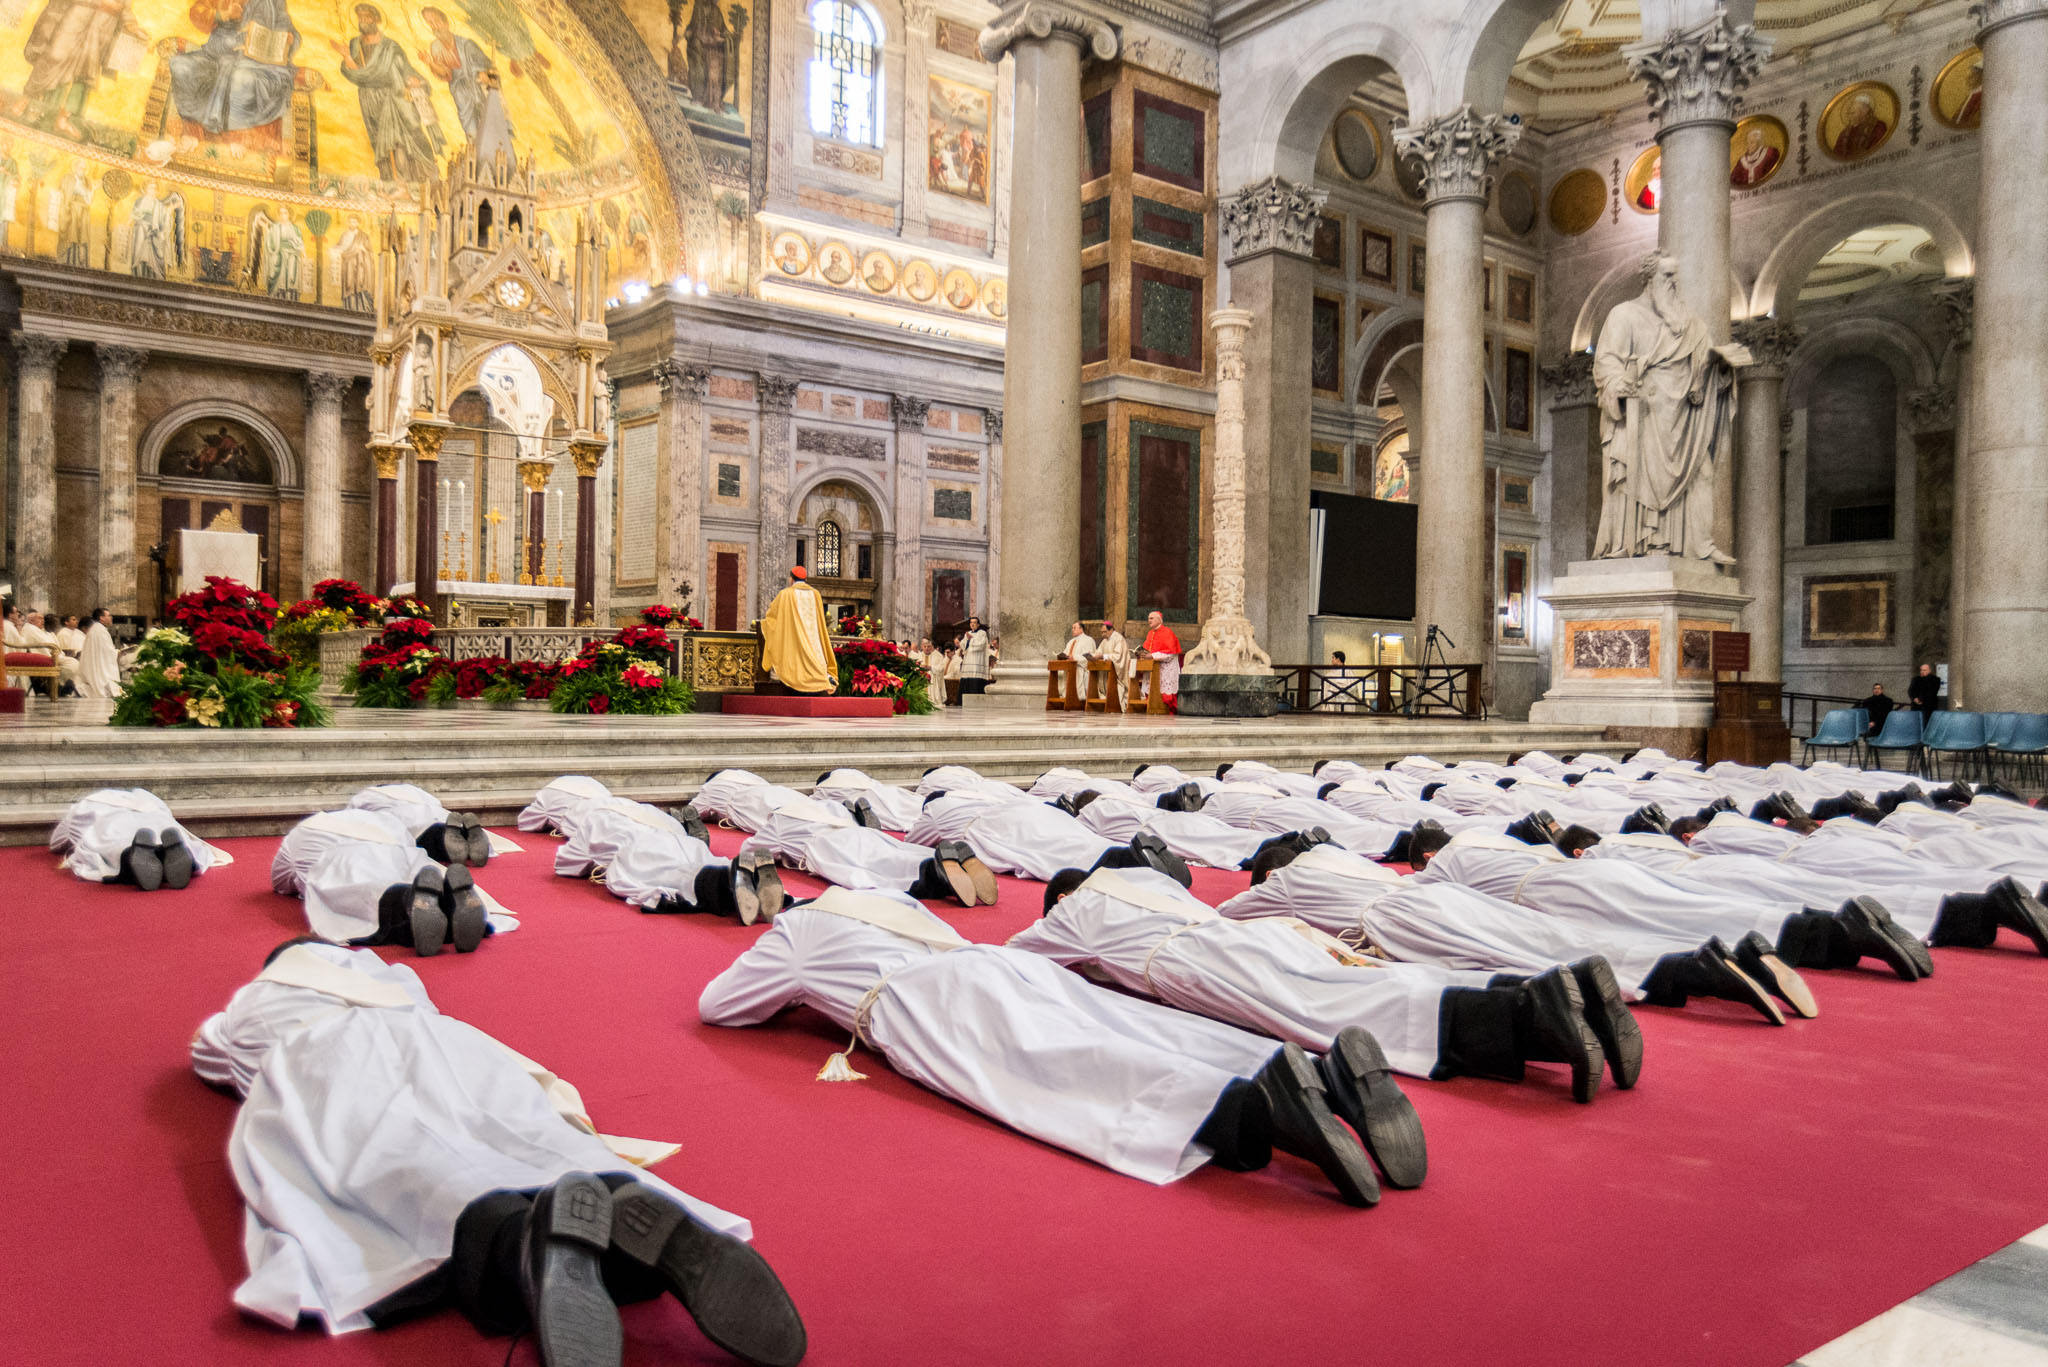 Ordination of 44 new priests of the Legionaries of Christ